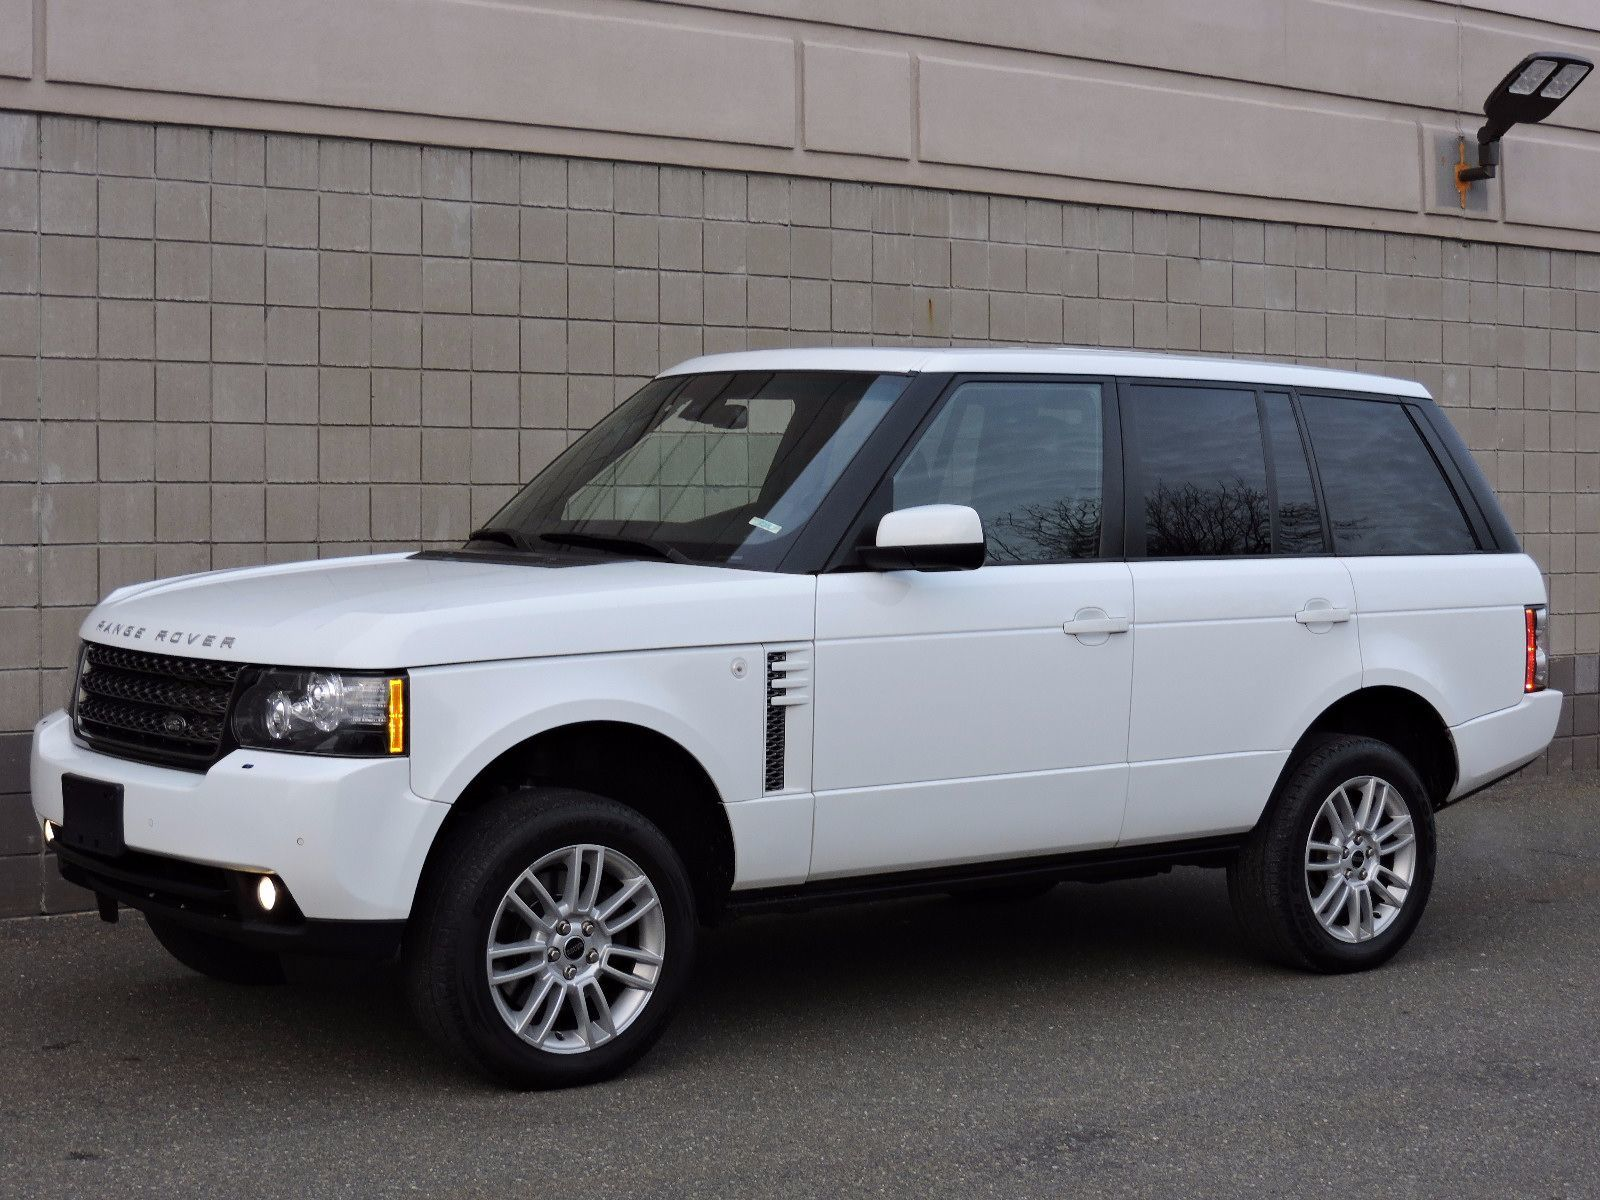 used 2008 land rover range rover for sale pricing autos post. Black Bedroom Furniture Sets. Home Design Ideas